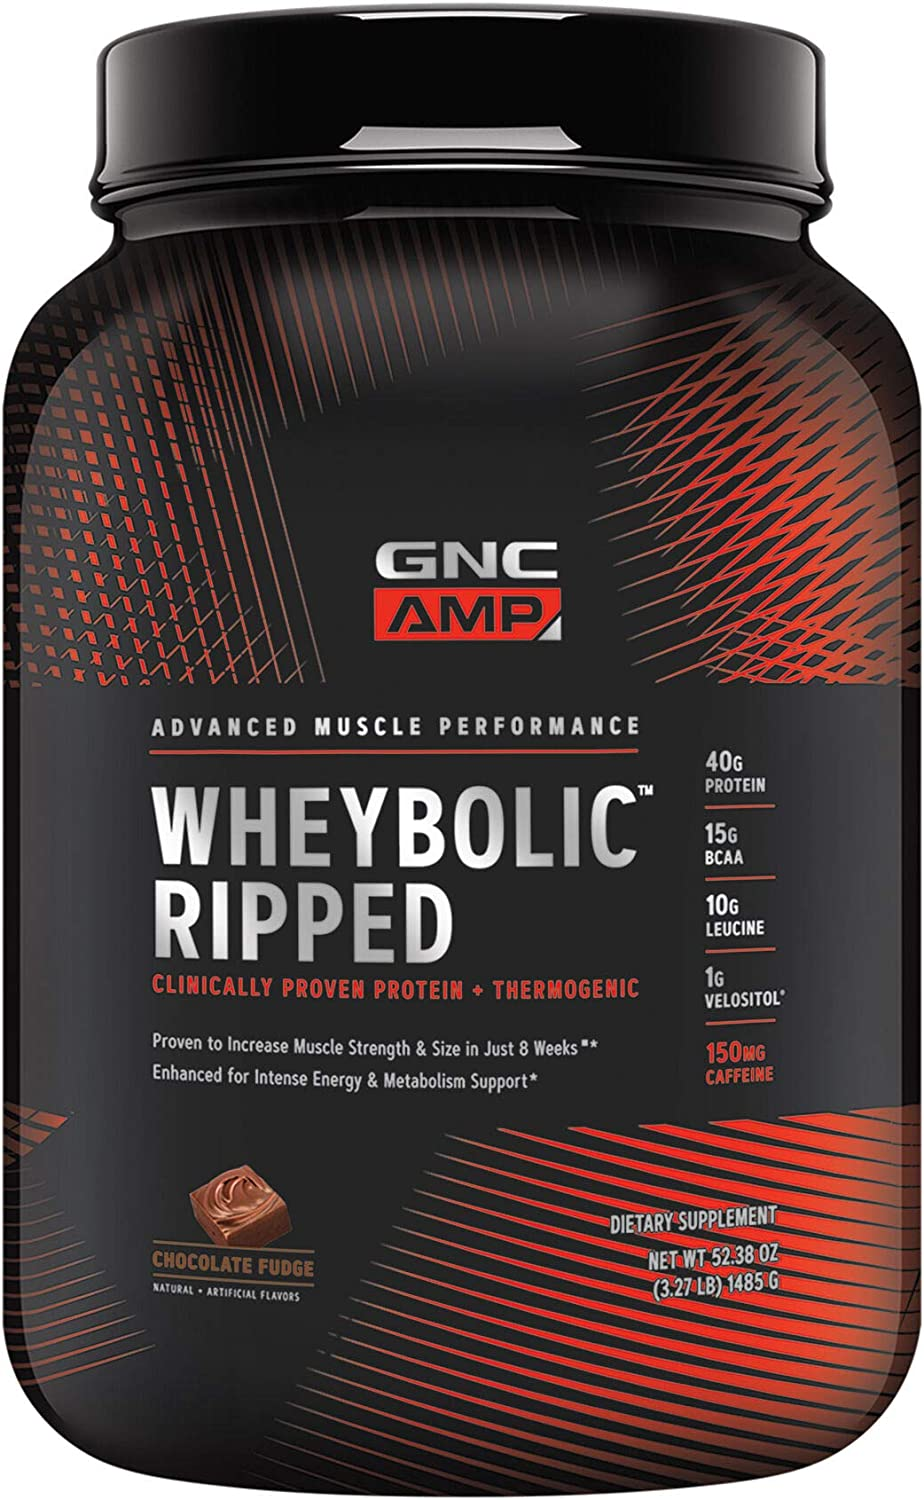 Gnc amino acids for weight loss